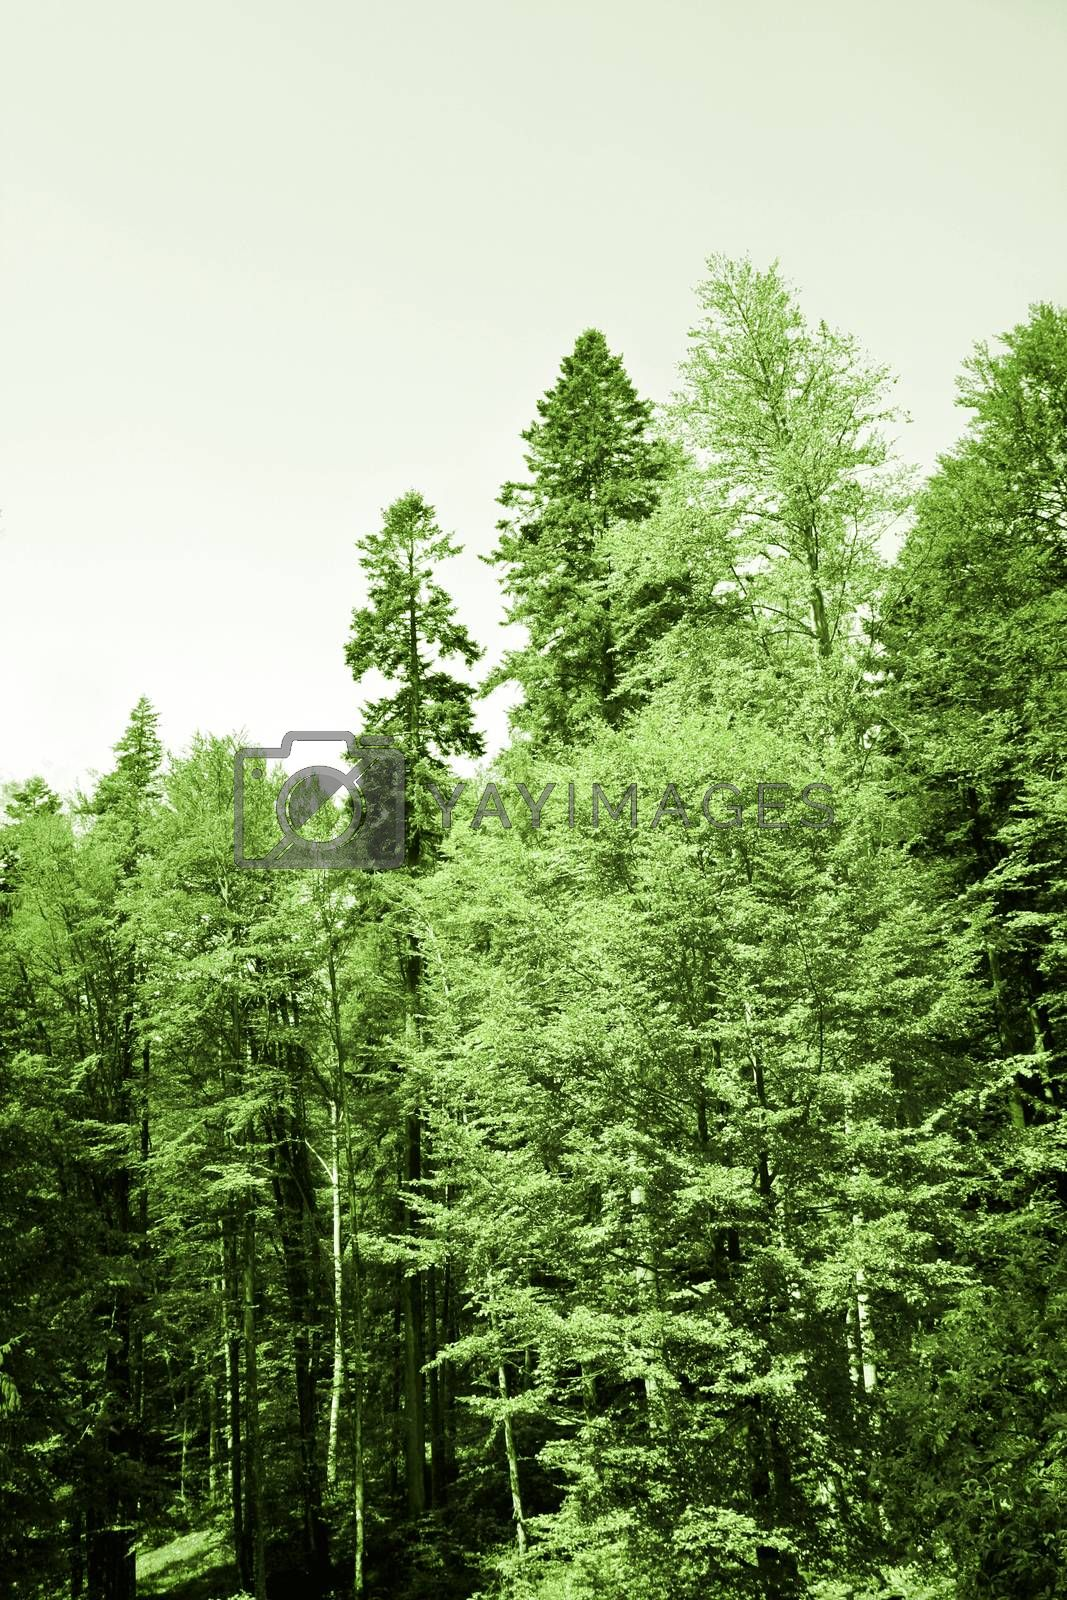 Landscape with tall green treees